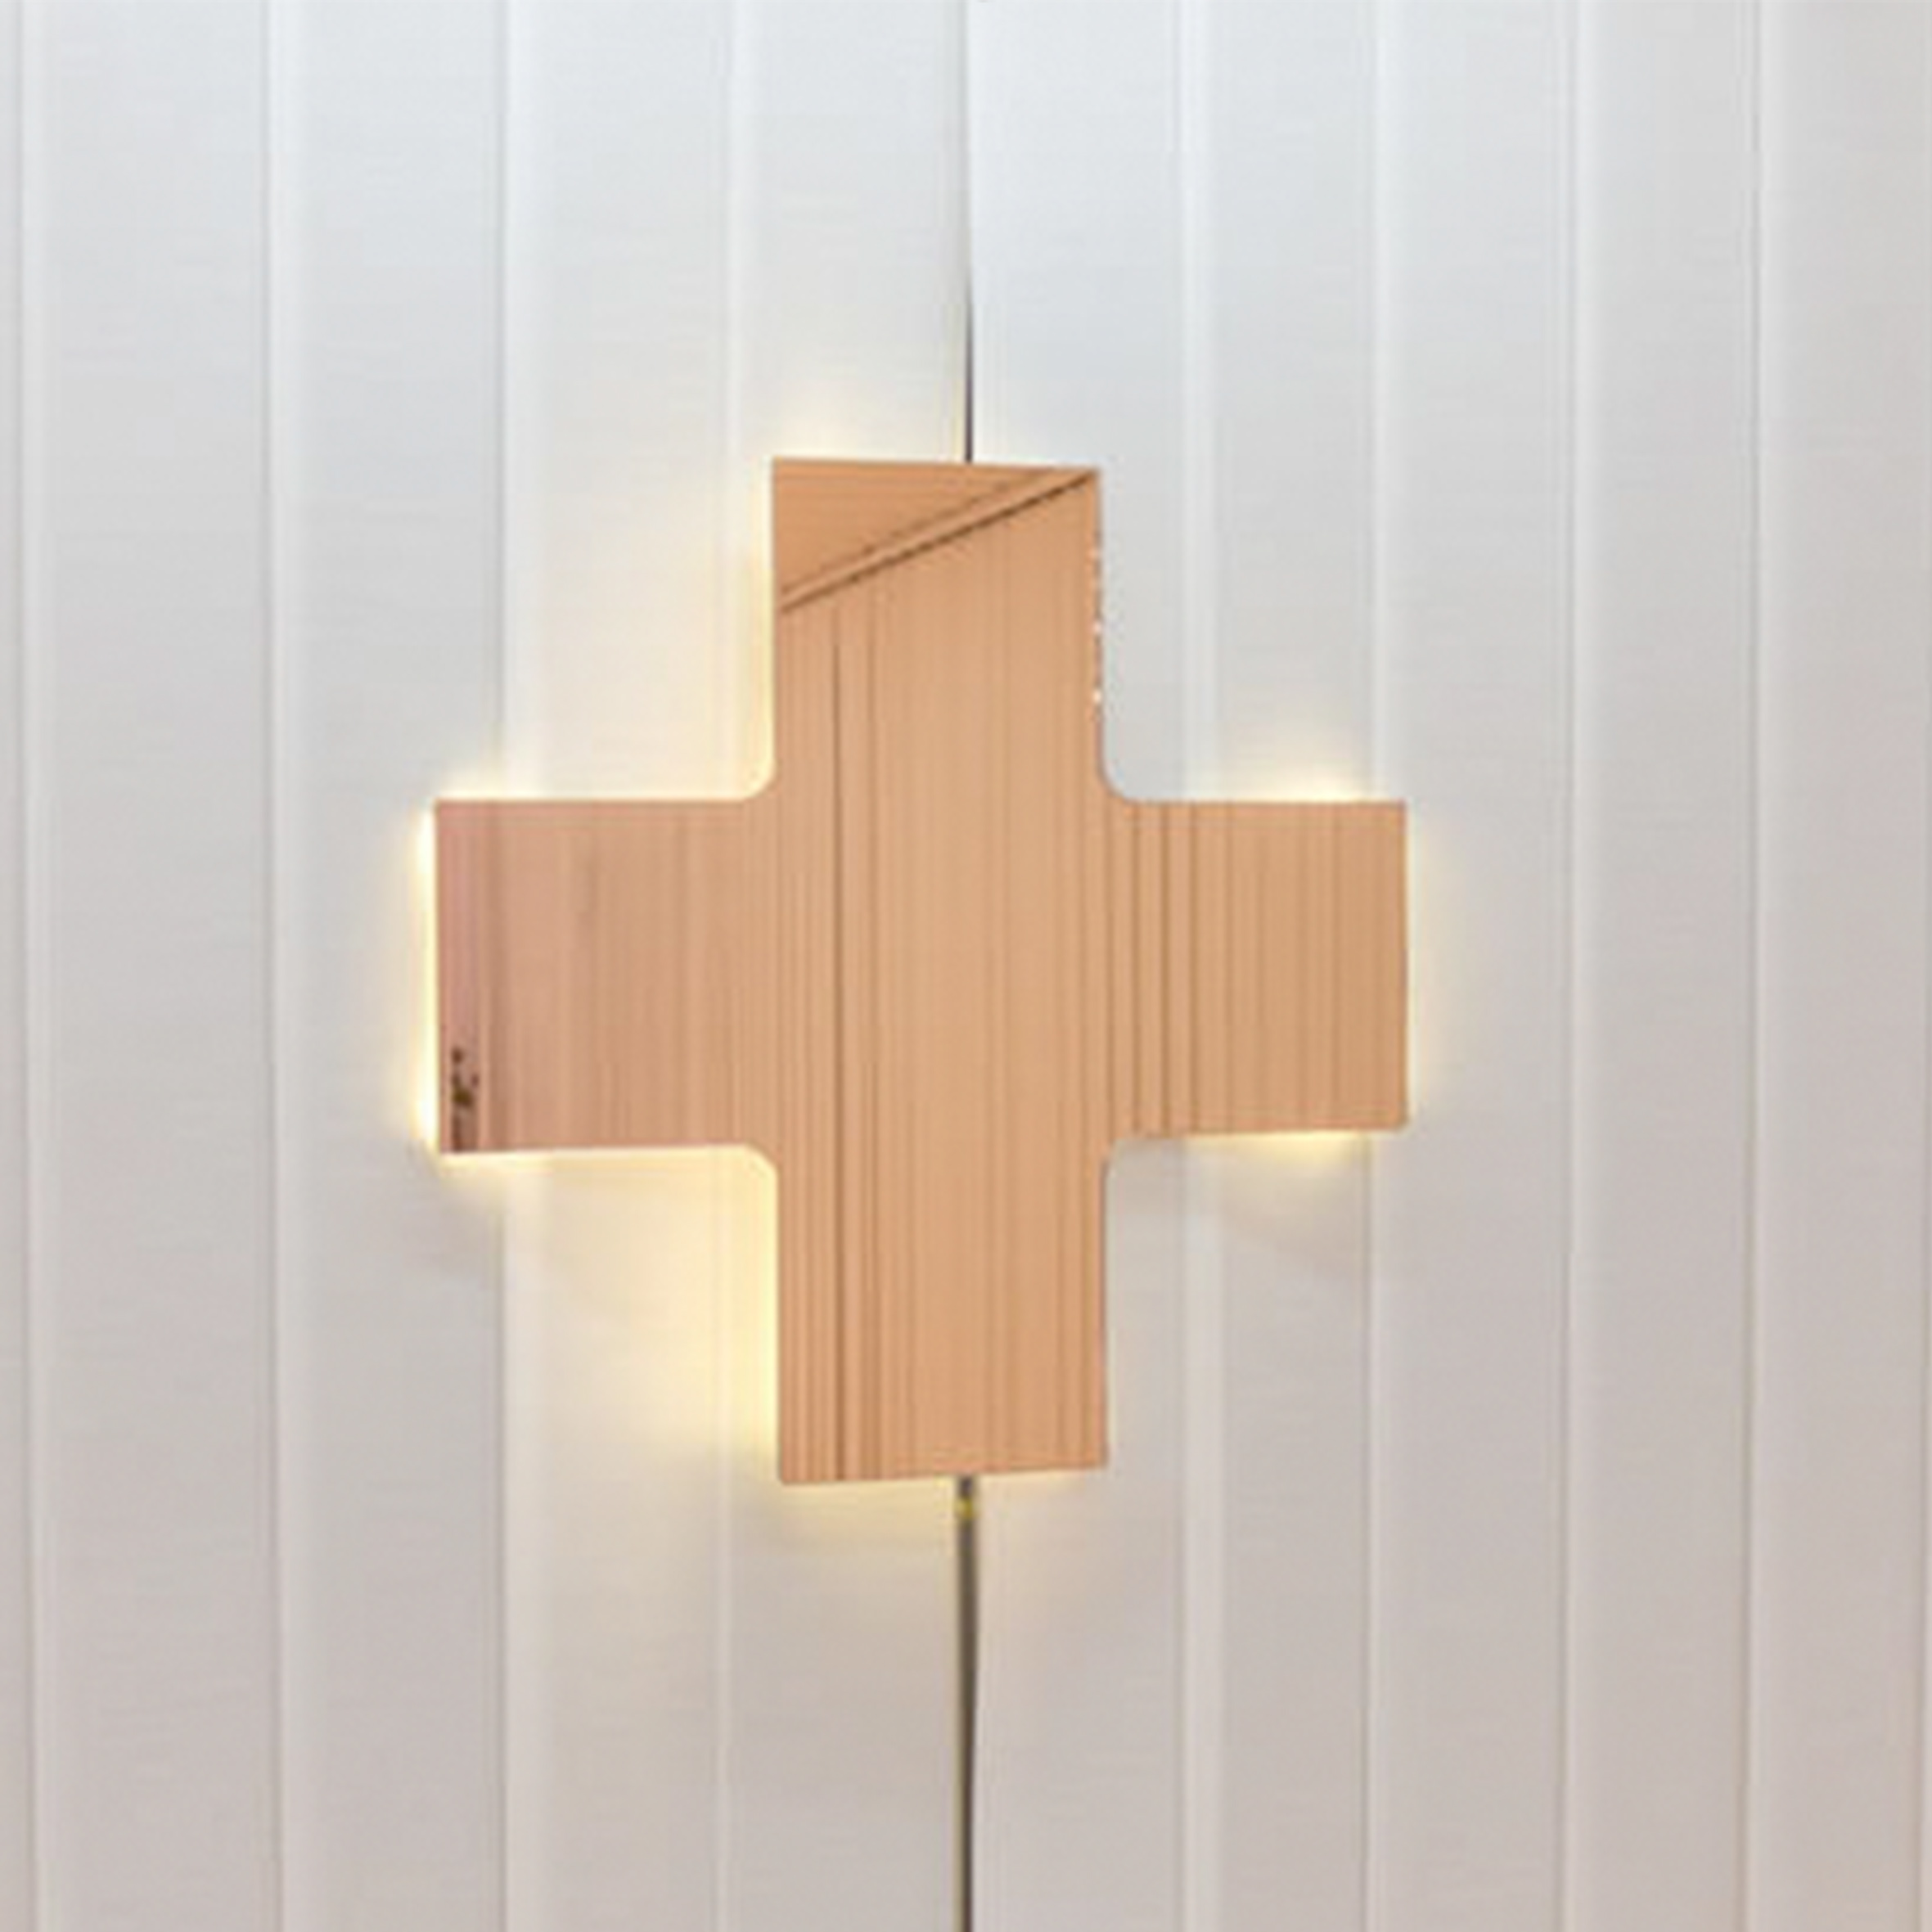 Cross-shaped mirror, Seletti for the NO SEX show by Atelier Biagetti